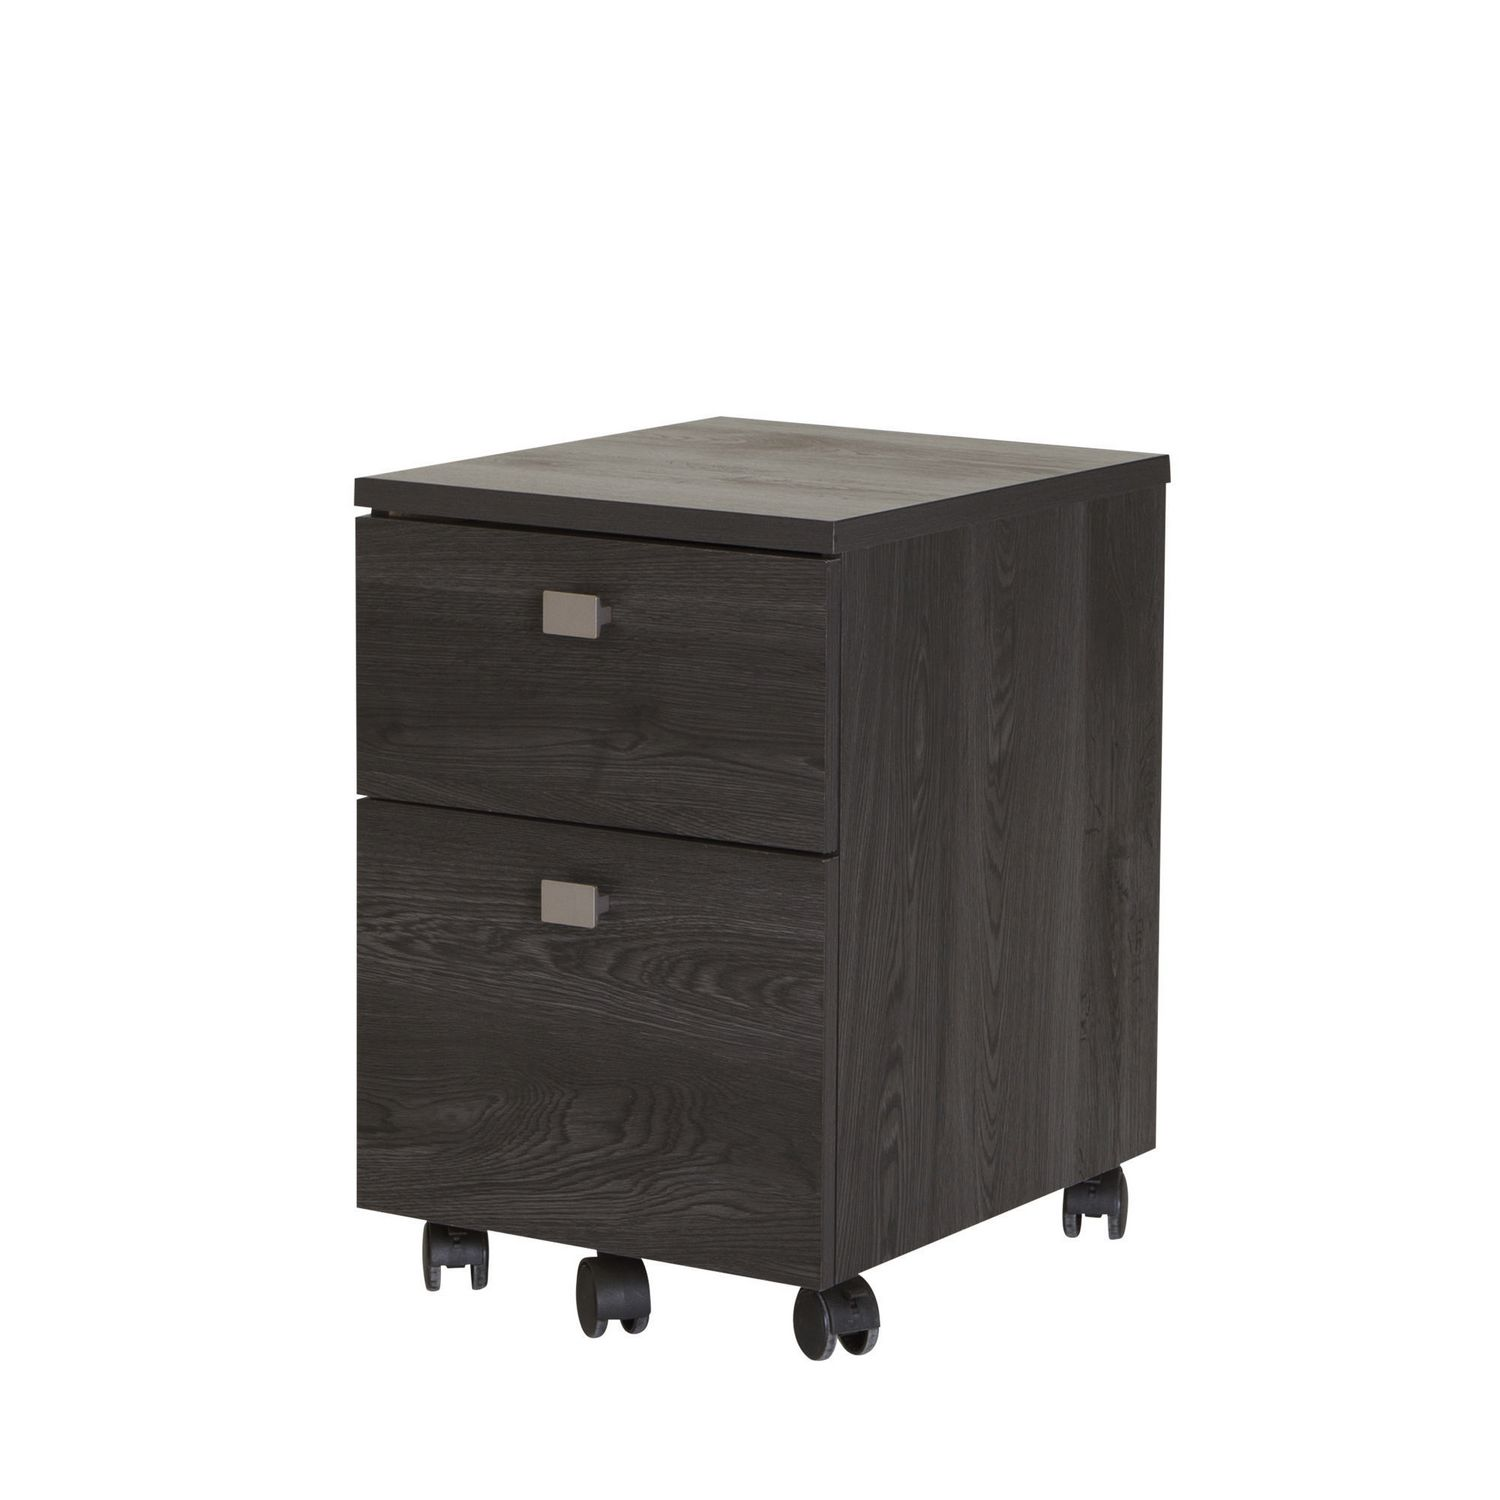 corner lateral is sometimes file temple stockton under manufacturer sku office nightstand also webster salinas reviews numbers following the listed cabinet